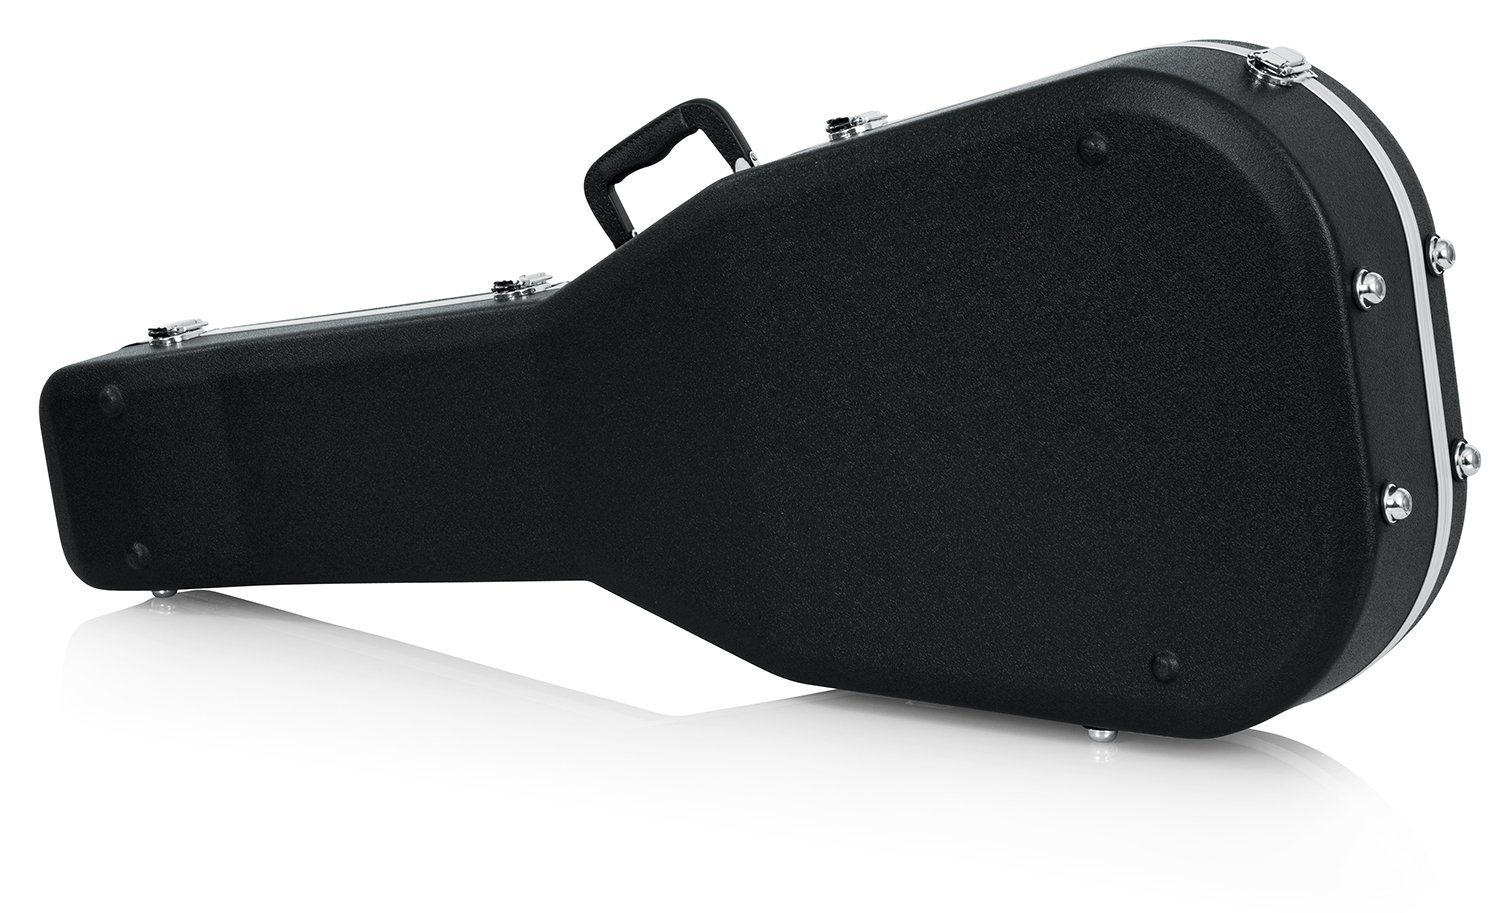 Gator Cases Deluxe ABS Classical Guitar Case (Plastic) by Gator (Image #6)